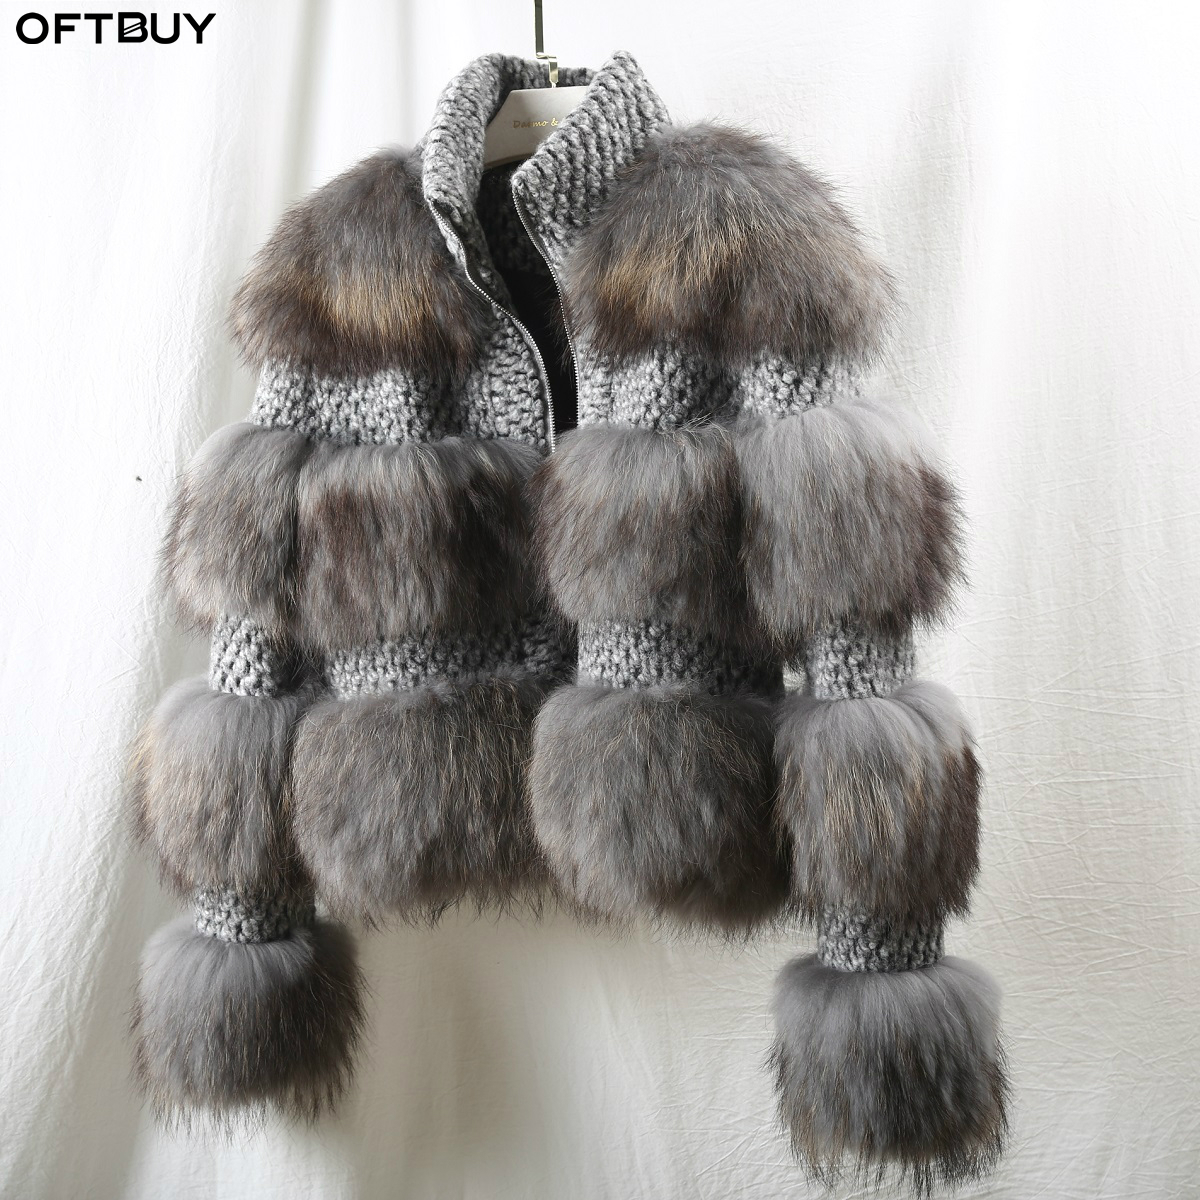 OFTBUY 2019 Winter Jacket Women Grey Real Fur Coat Natural Raccoon Fur Woolen Outerwear Bomber Jacket Korean Streetwear New